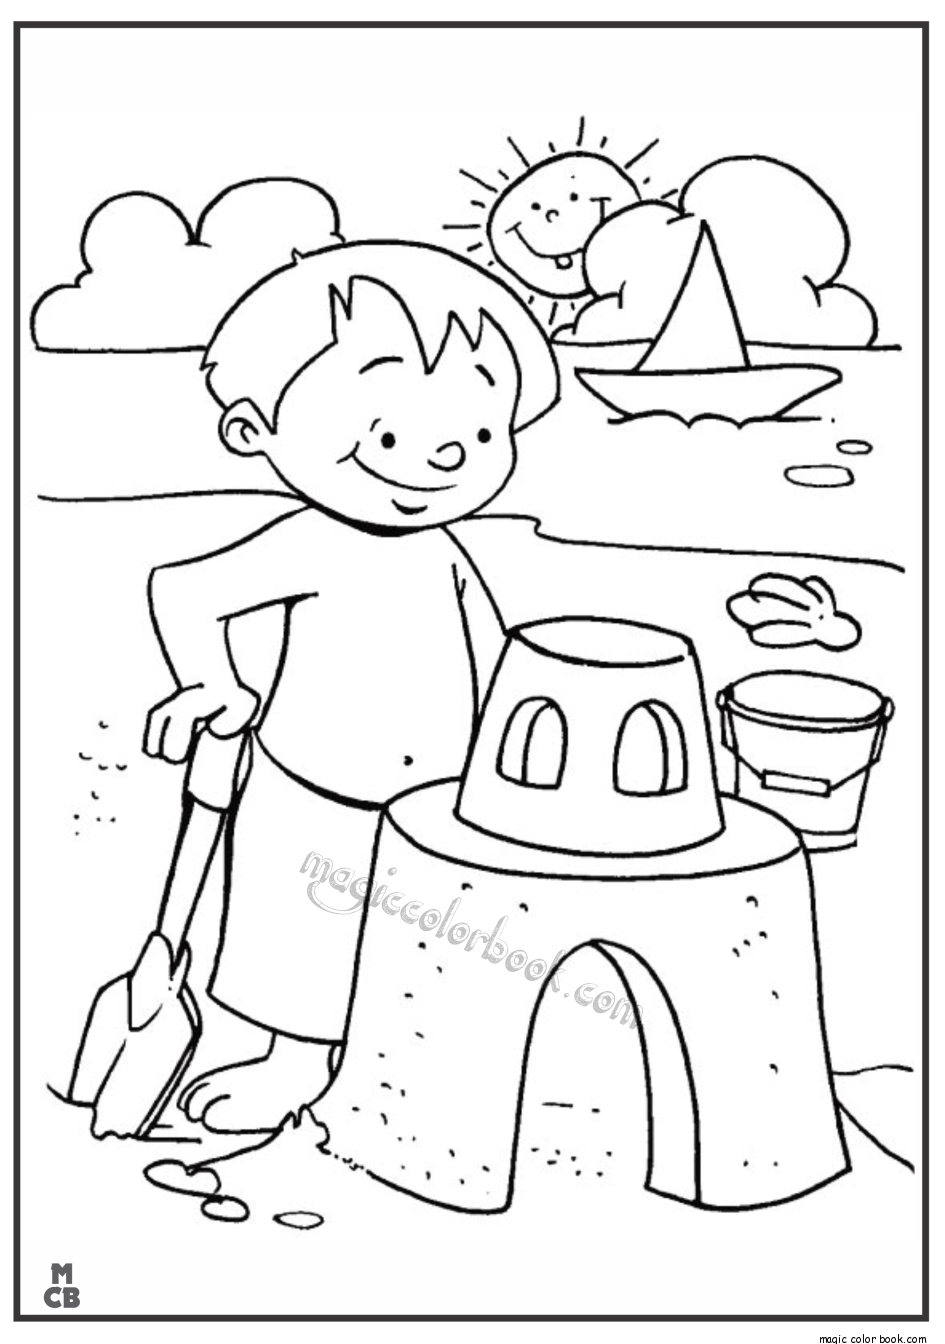 Free-Summer-Coloring-Pages-for-kids.png (945×1344) | Drawings ...